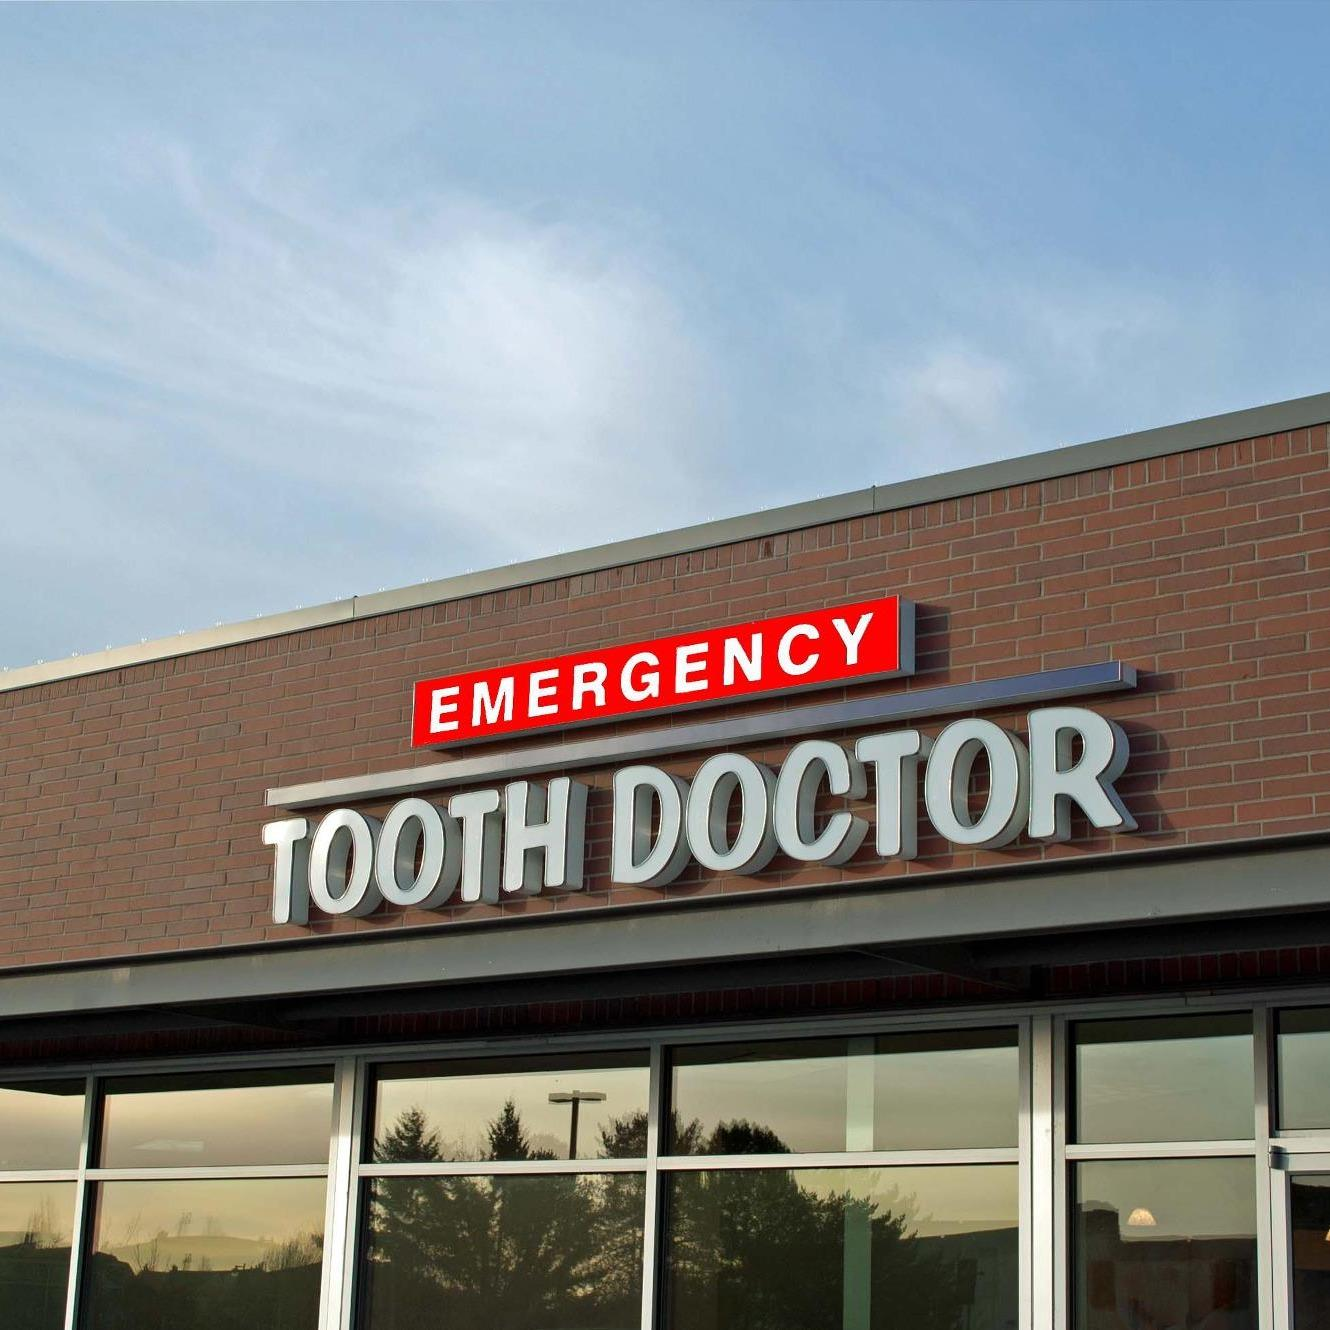 Emergency Tooth Doctor - East